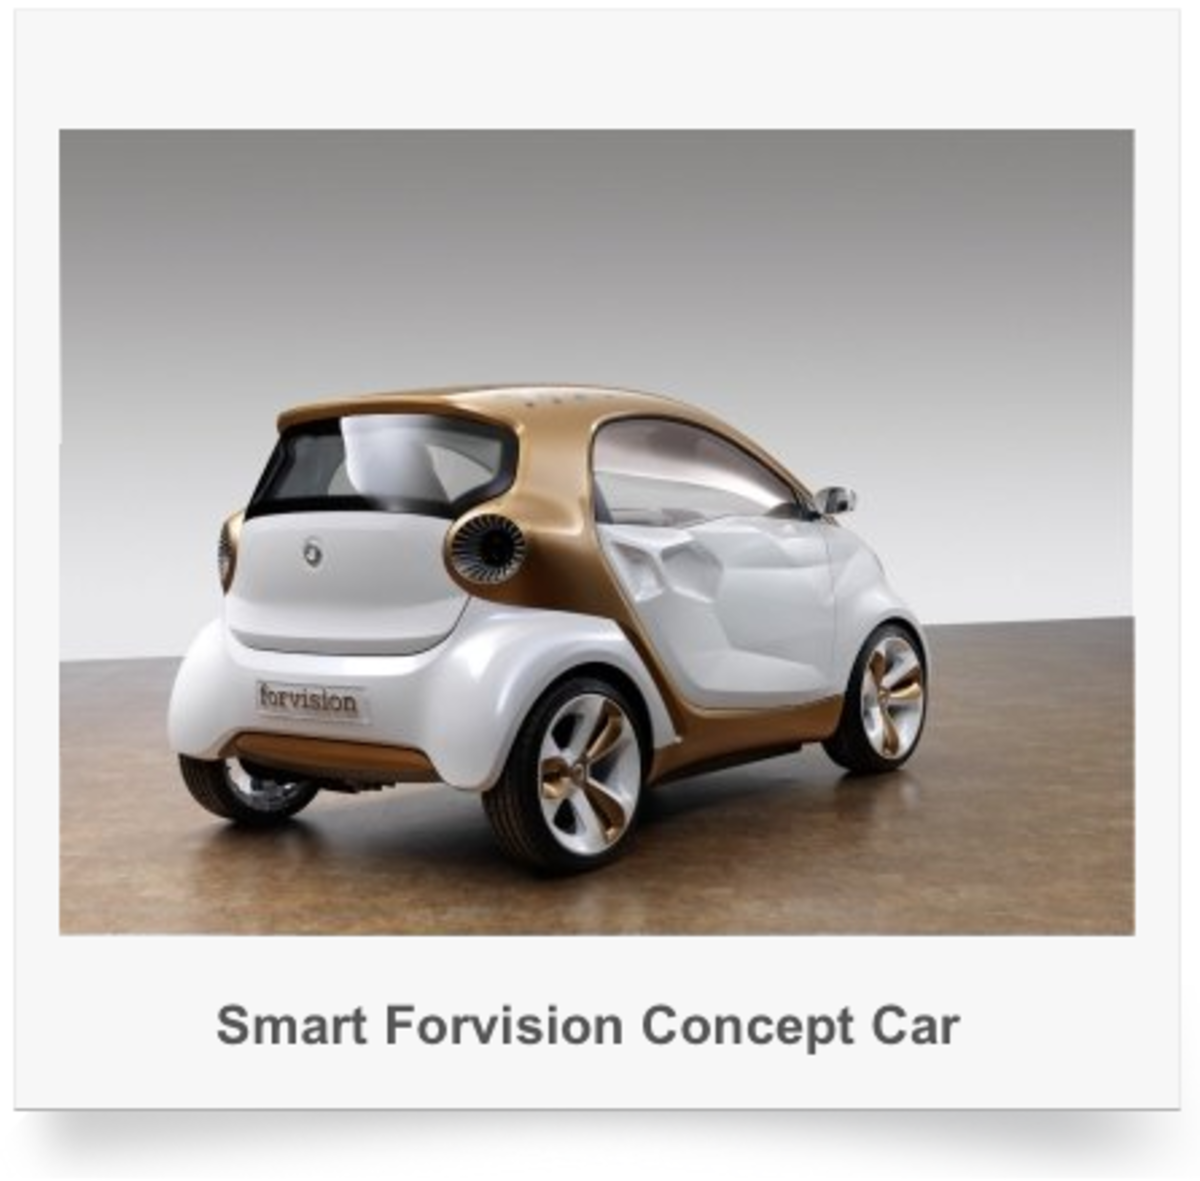 Wicked Smart Car concept art print - one of four unique angles